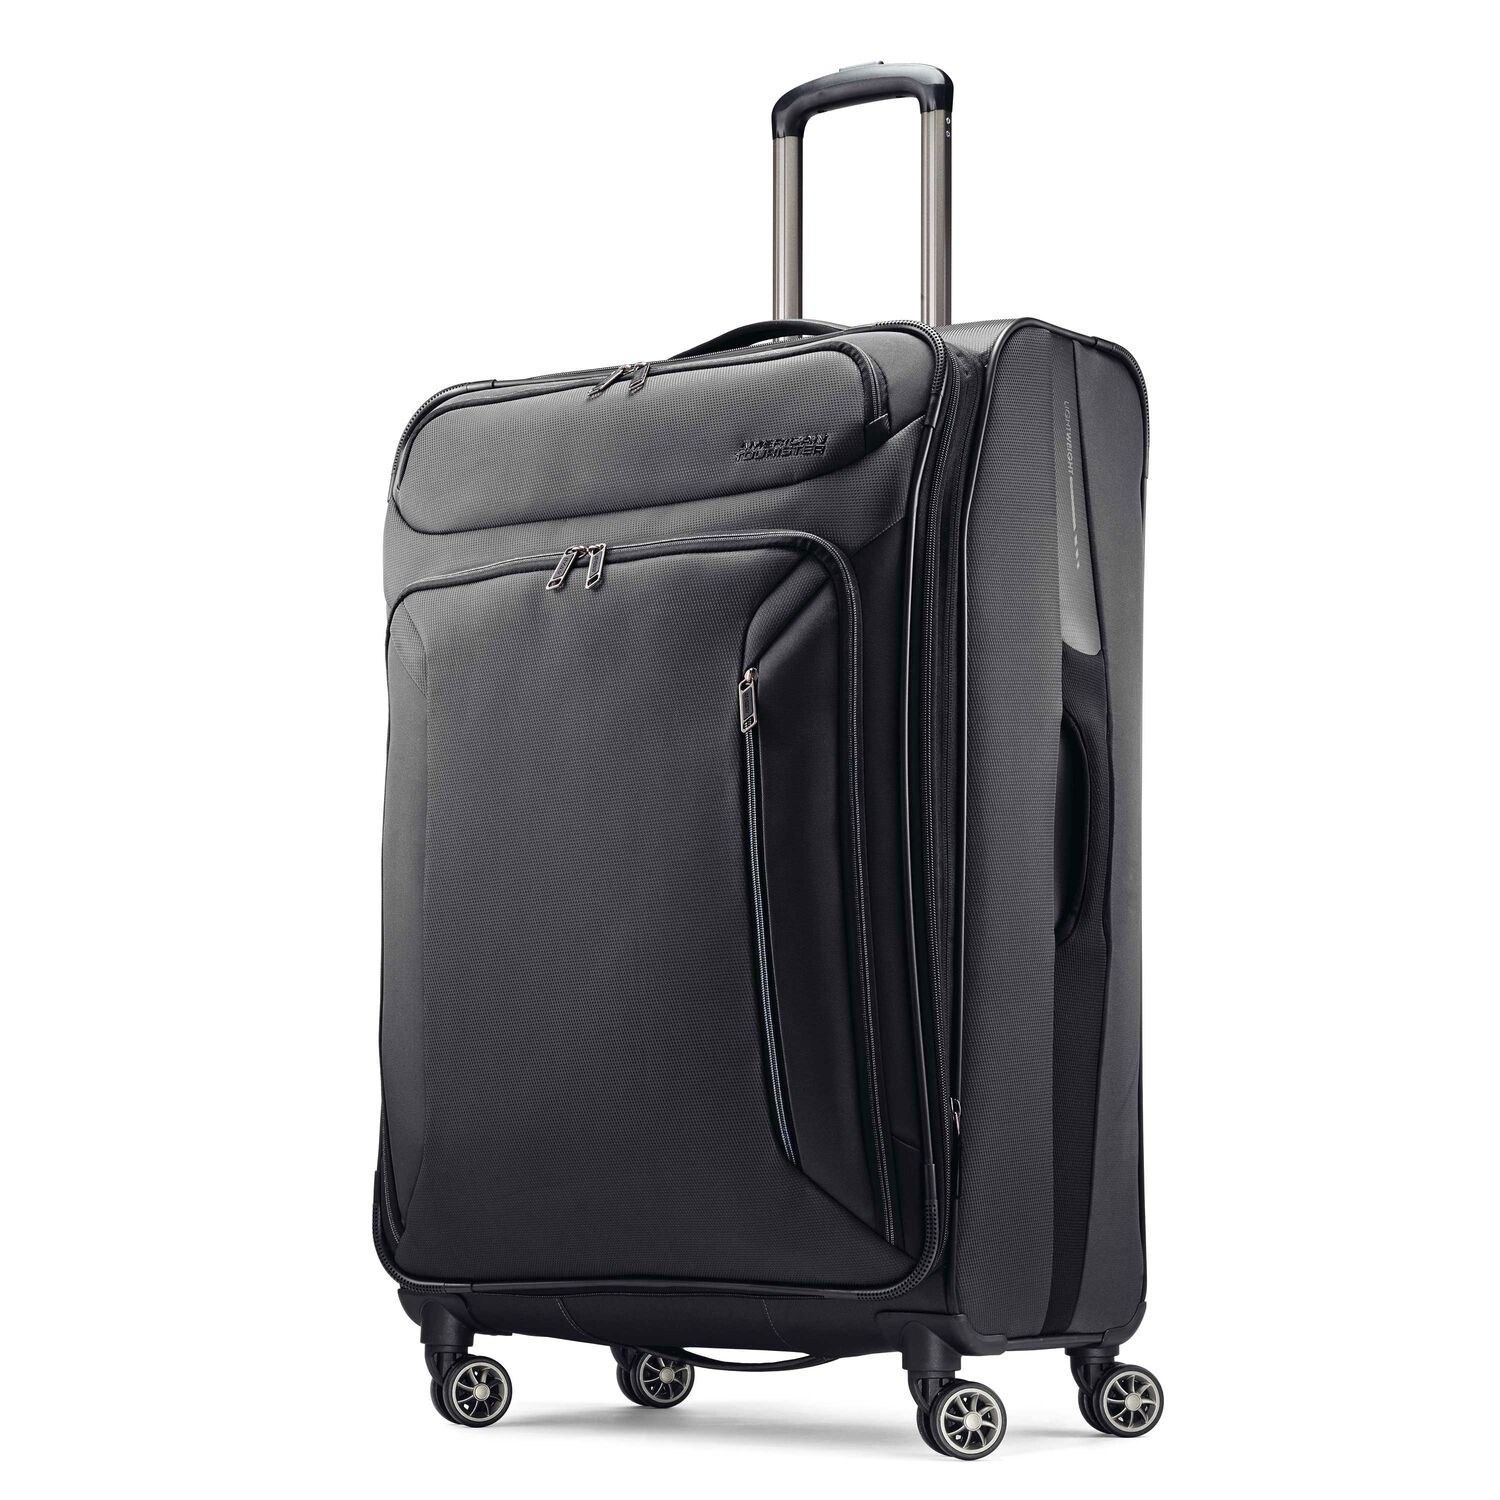 American Tourister Zoom 28 Spinner In The Color Black